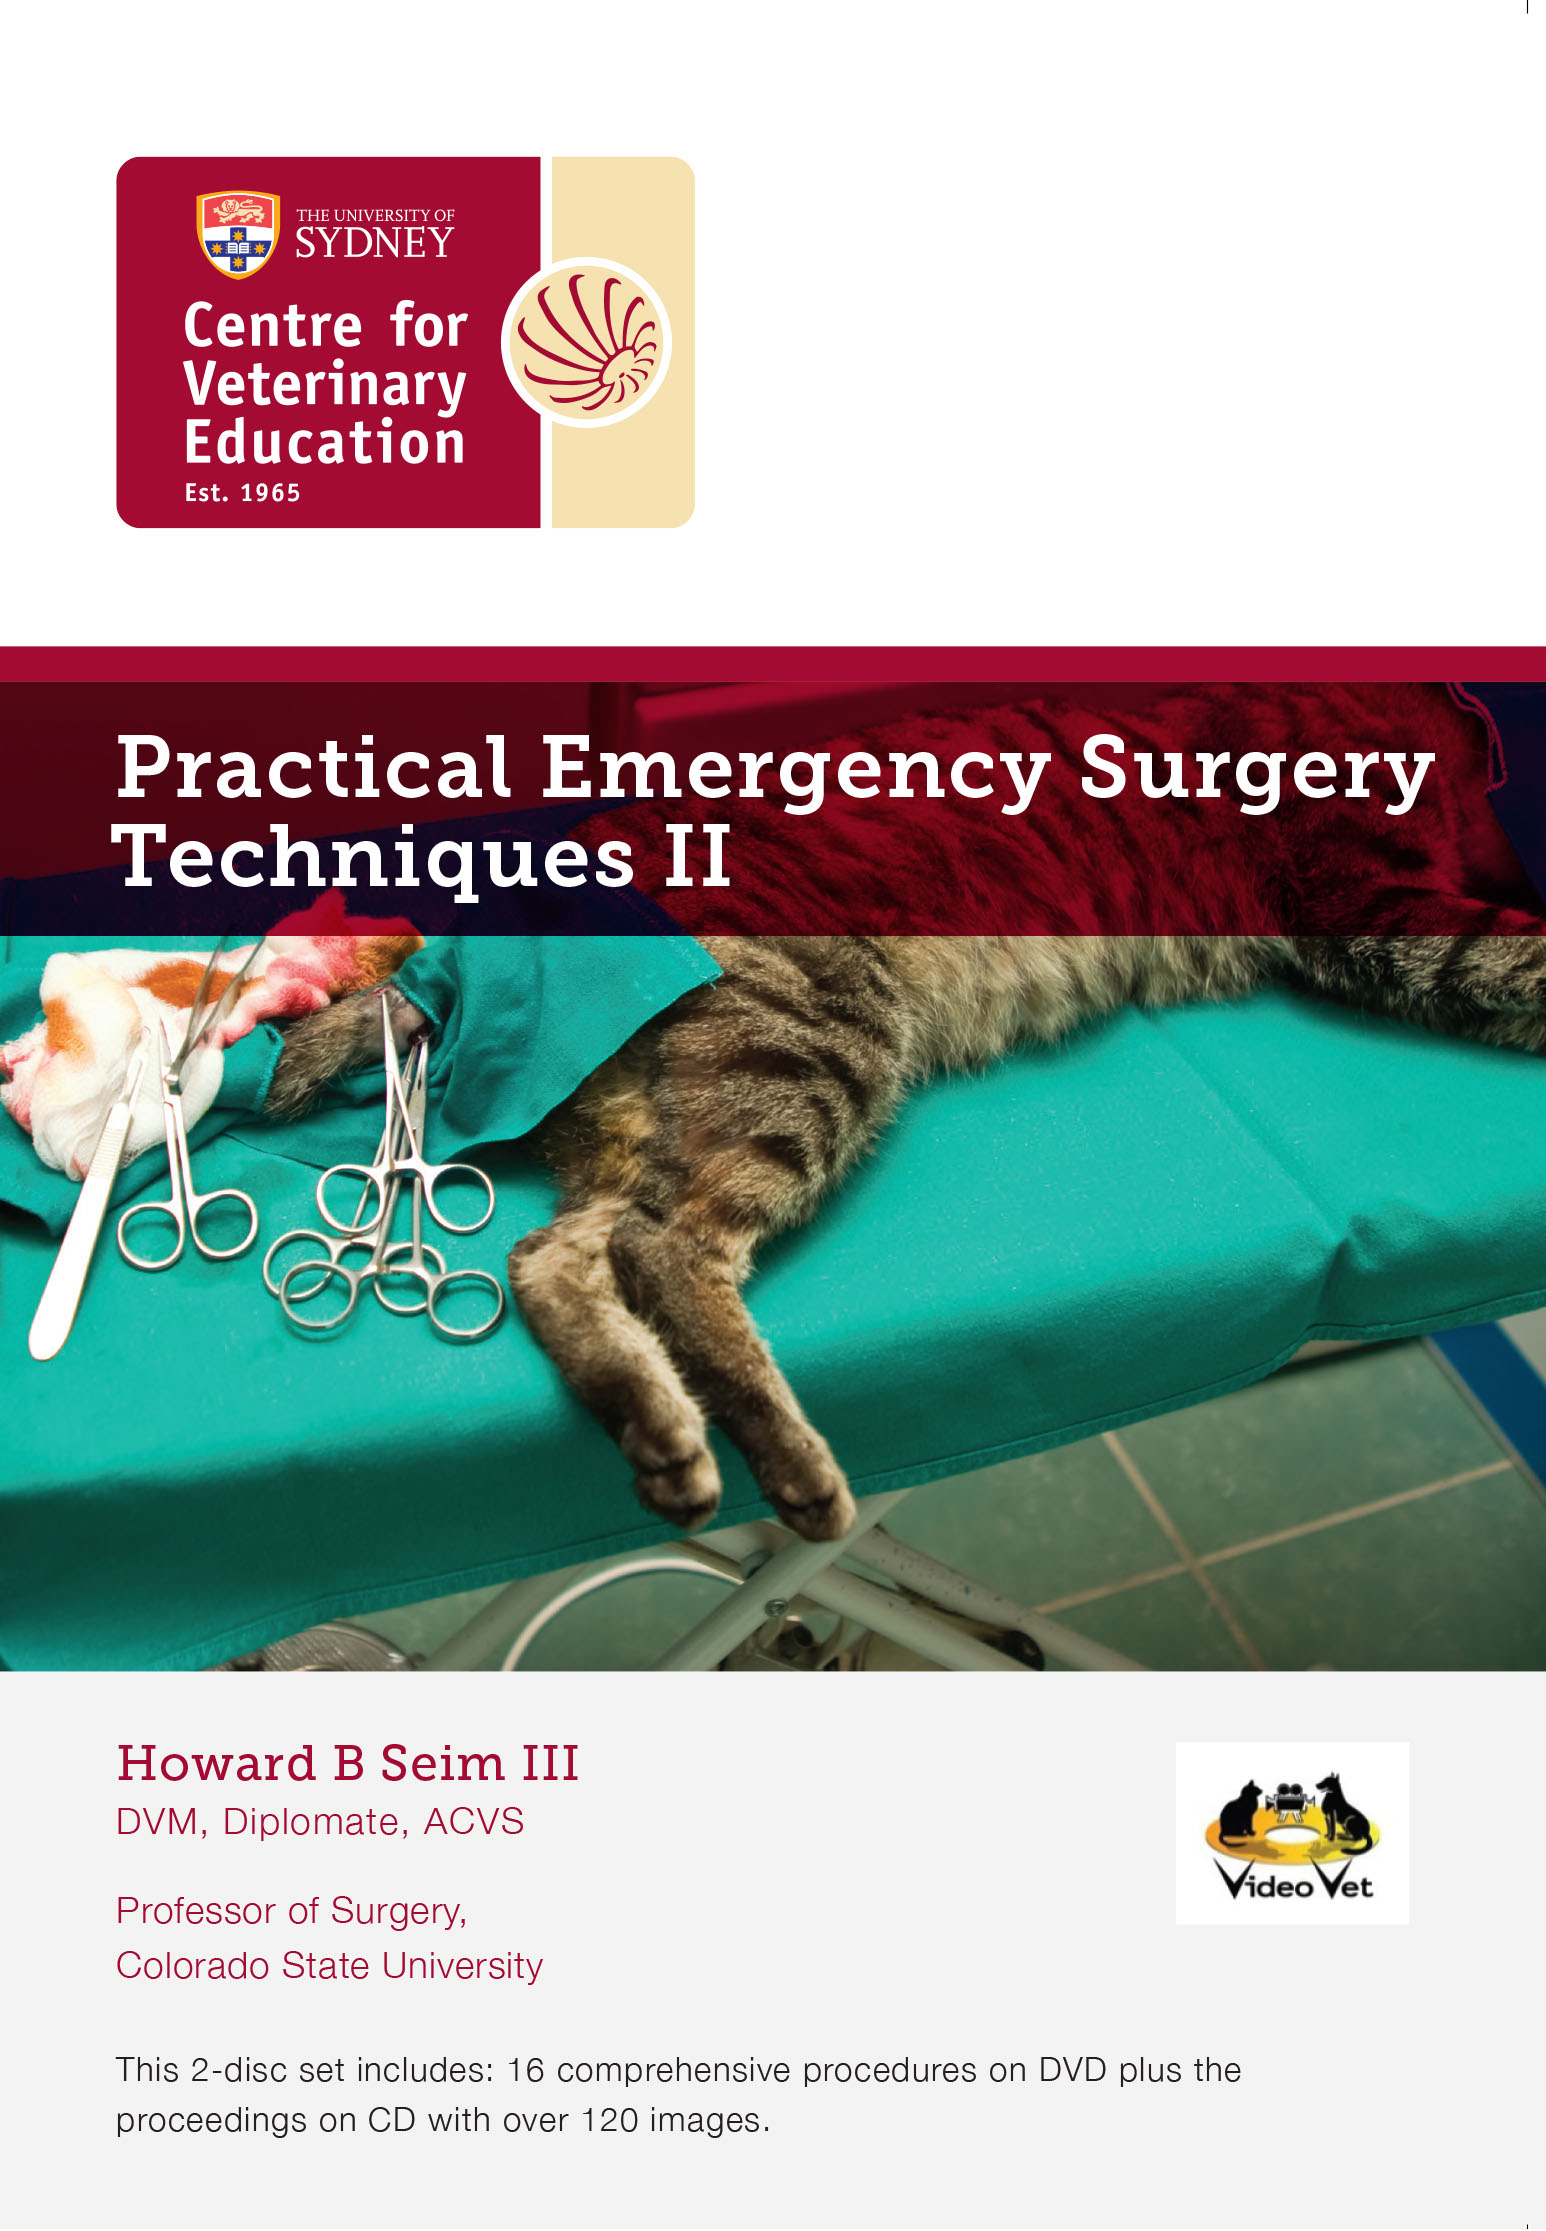 Practical Emergency Surgery Techniques II (MP4)